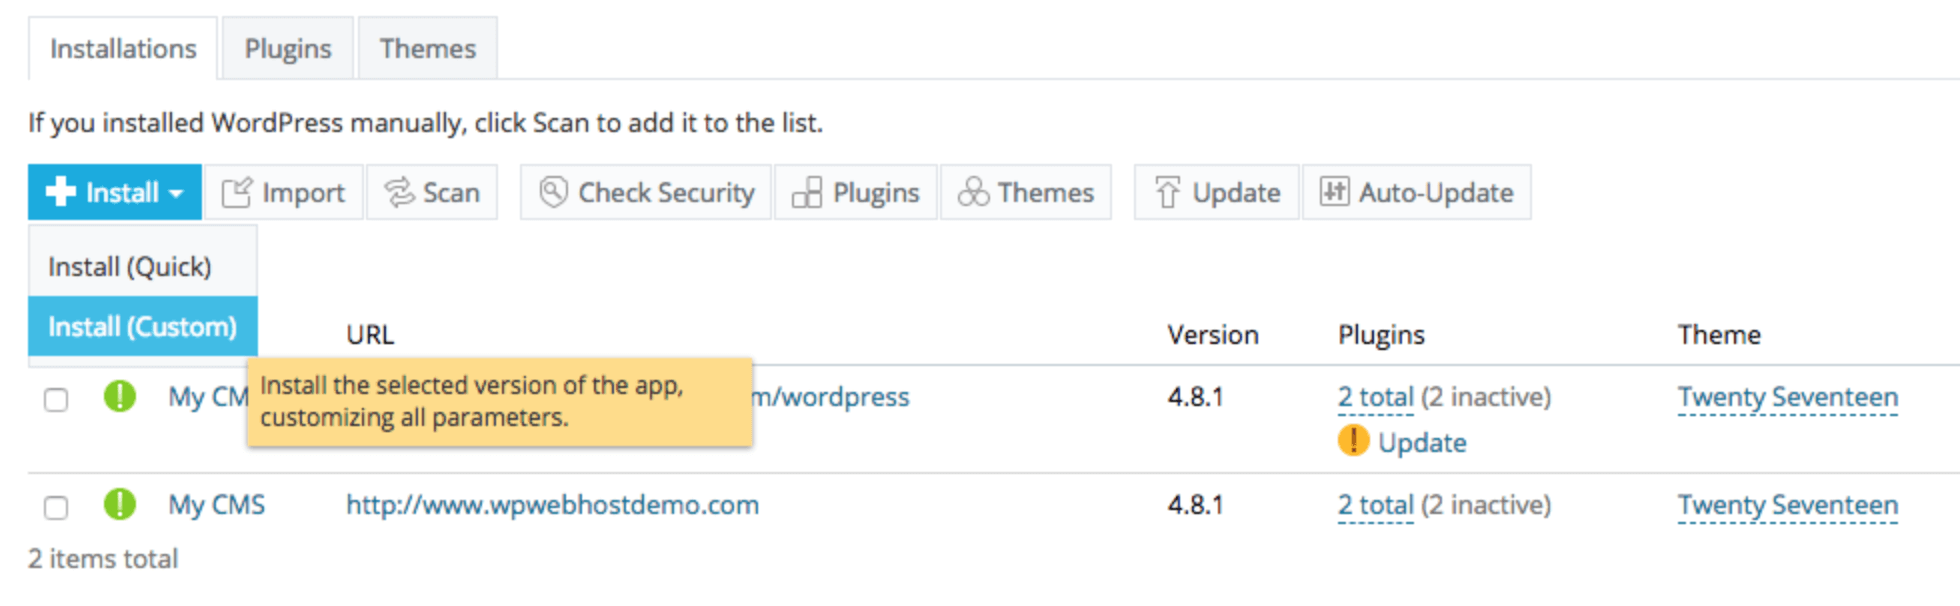 Installing WordPress using a one-click option in the WPWebHost dashboard.